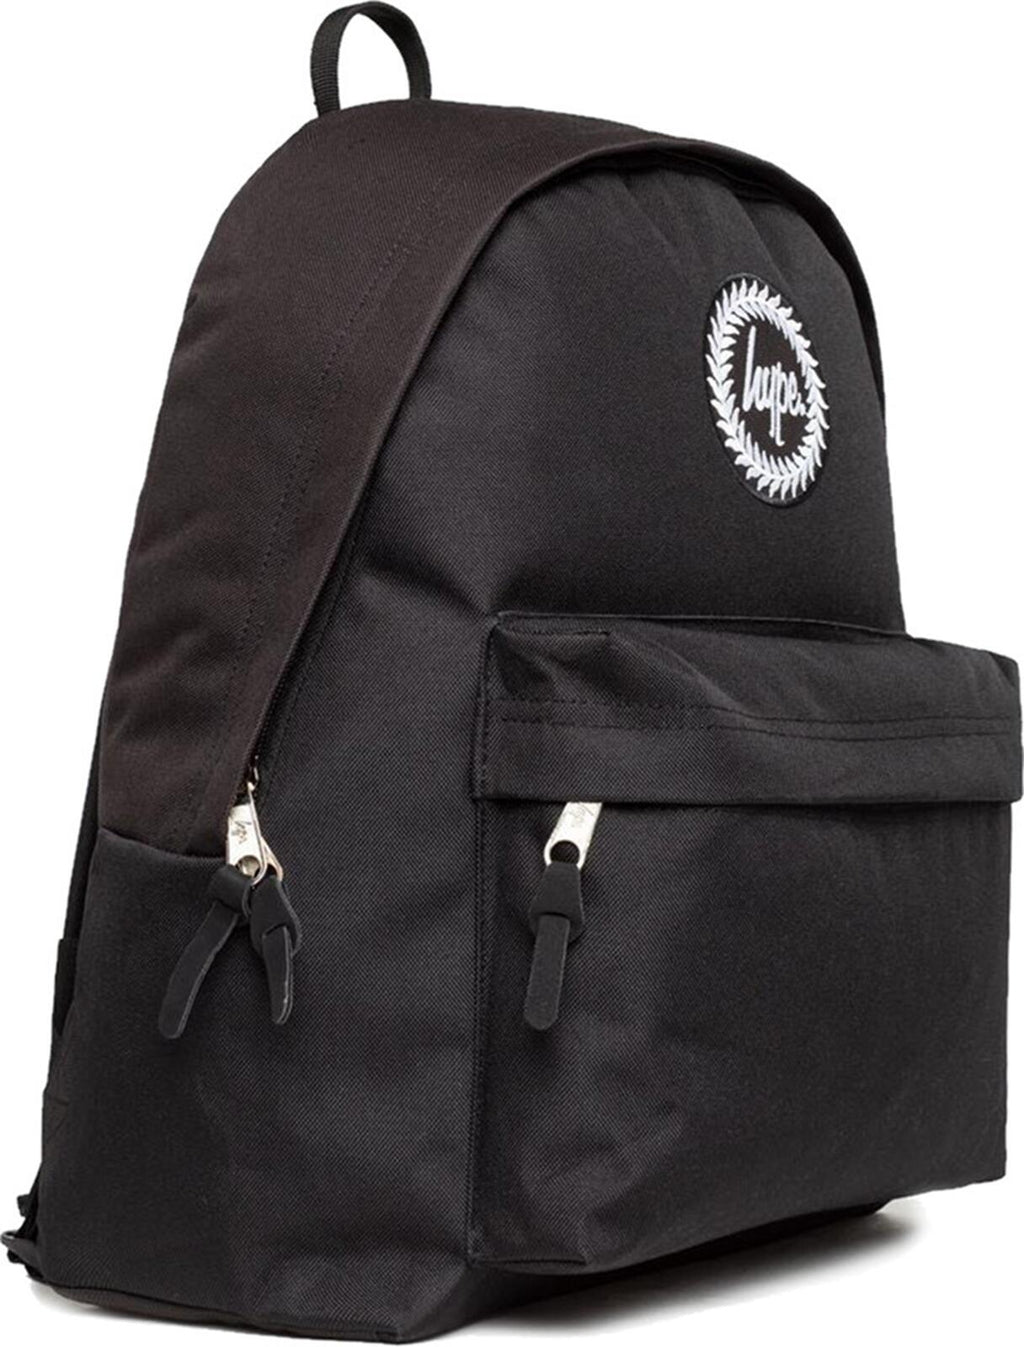 Hype Core Backpack Bag Black